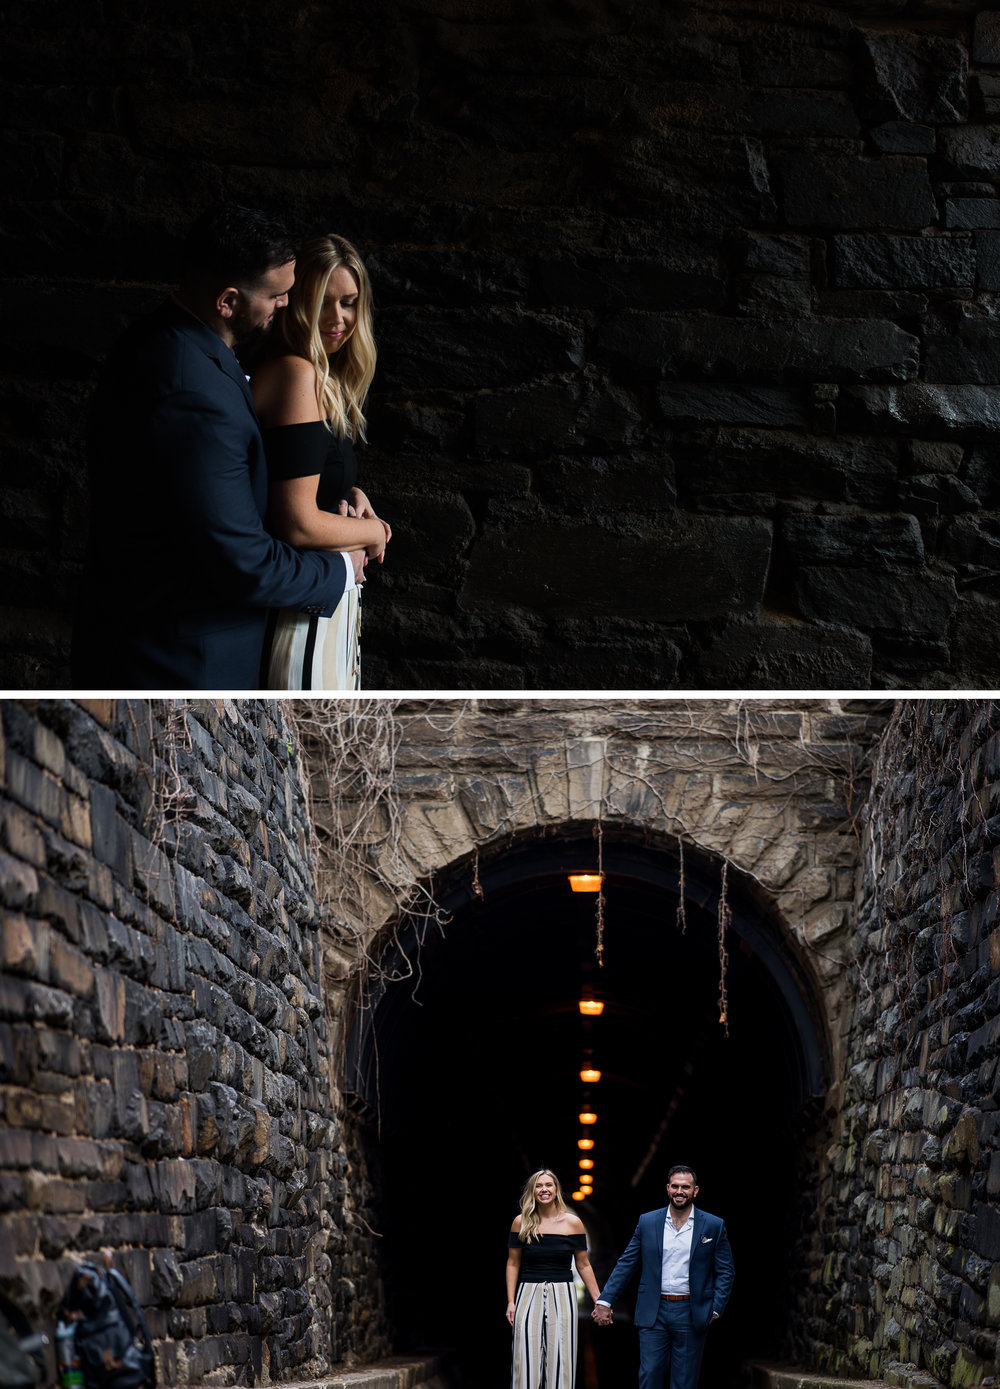 Columbus Wedding Photographer, Columbus Wedding Photography, Brett Loves Elle Photography, Wilkes St. Tunnel Engagement Session